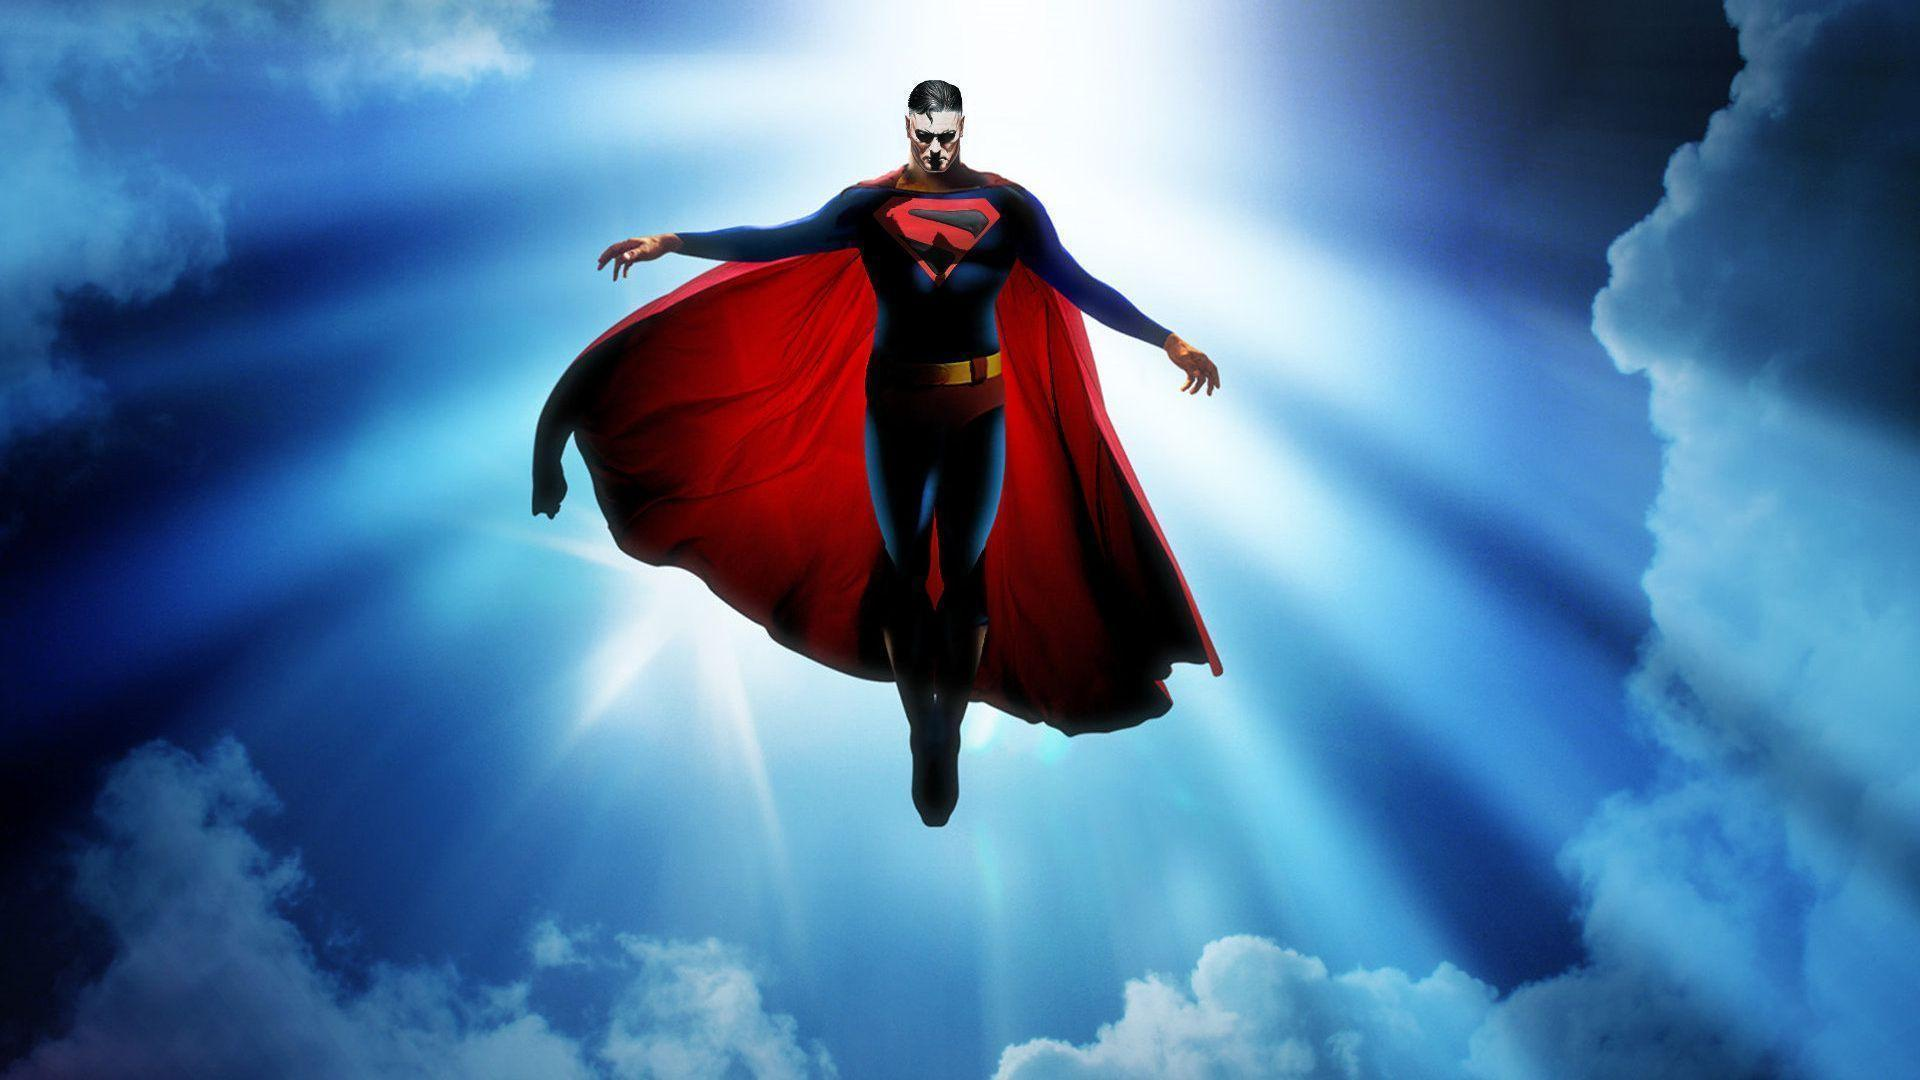 Cool superman wallpapers wallpaper cave - Superman screensaver ...